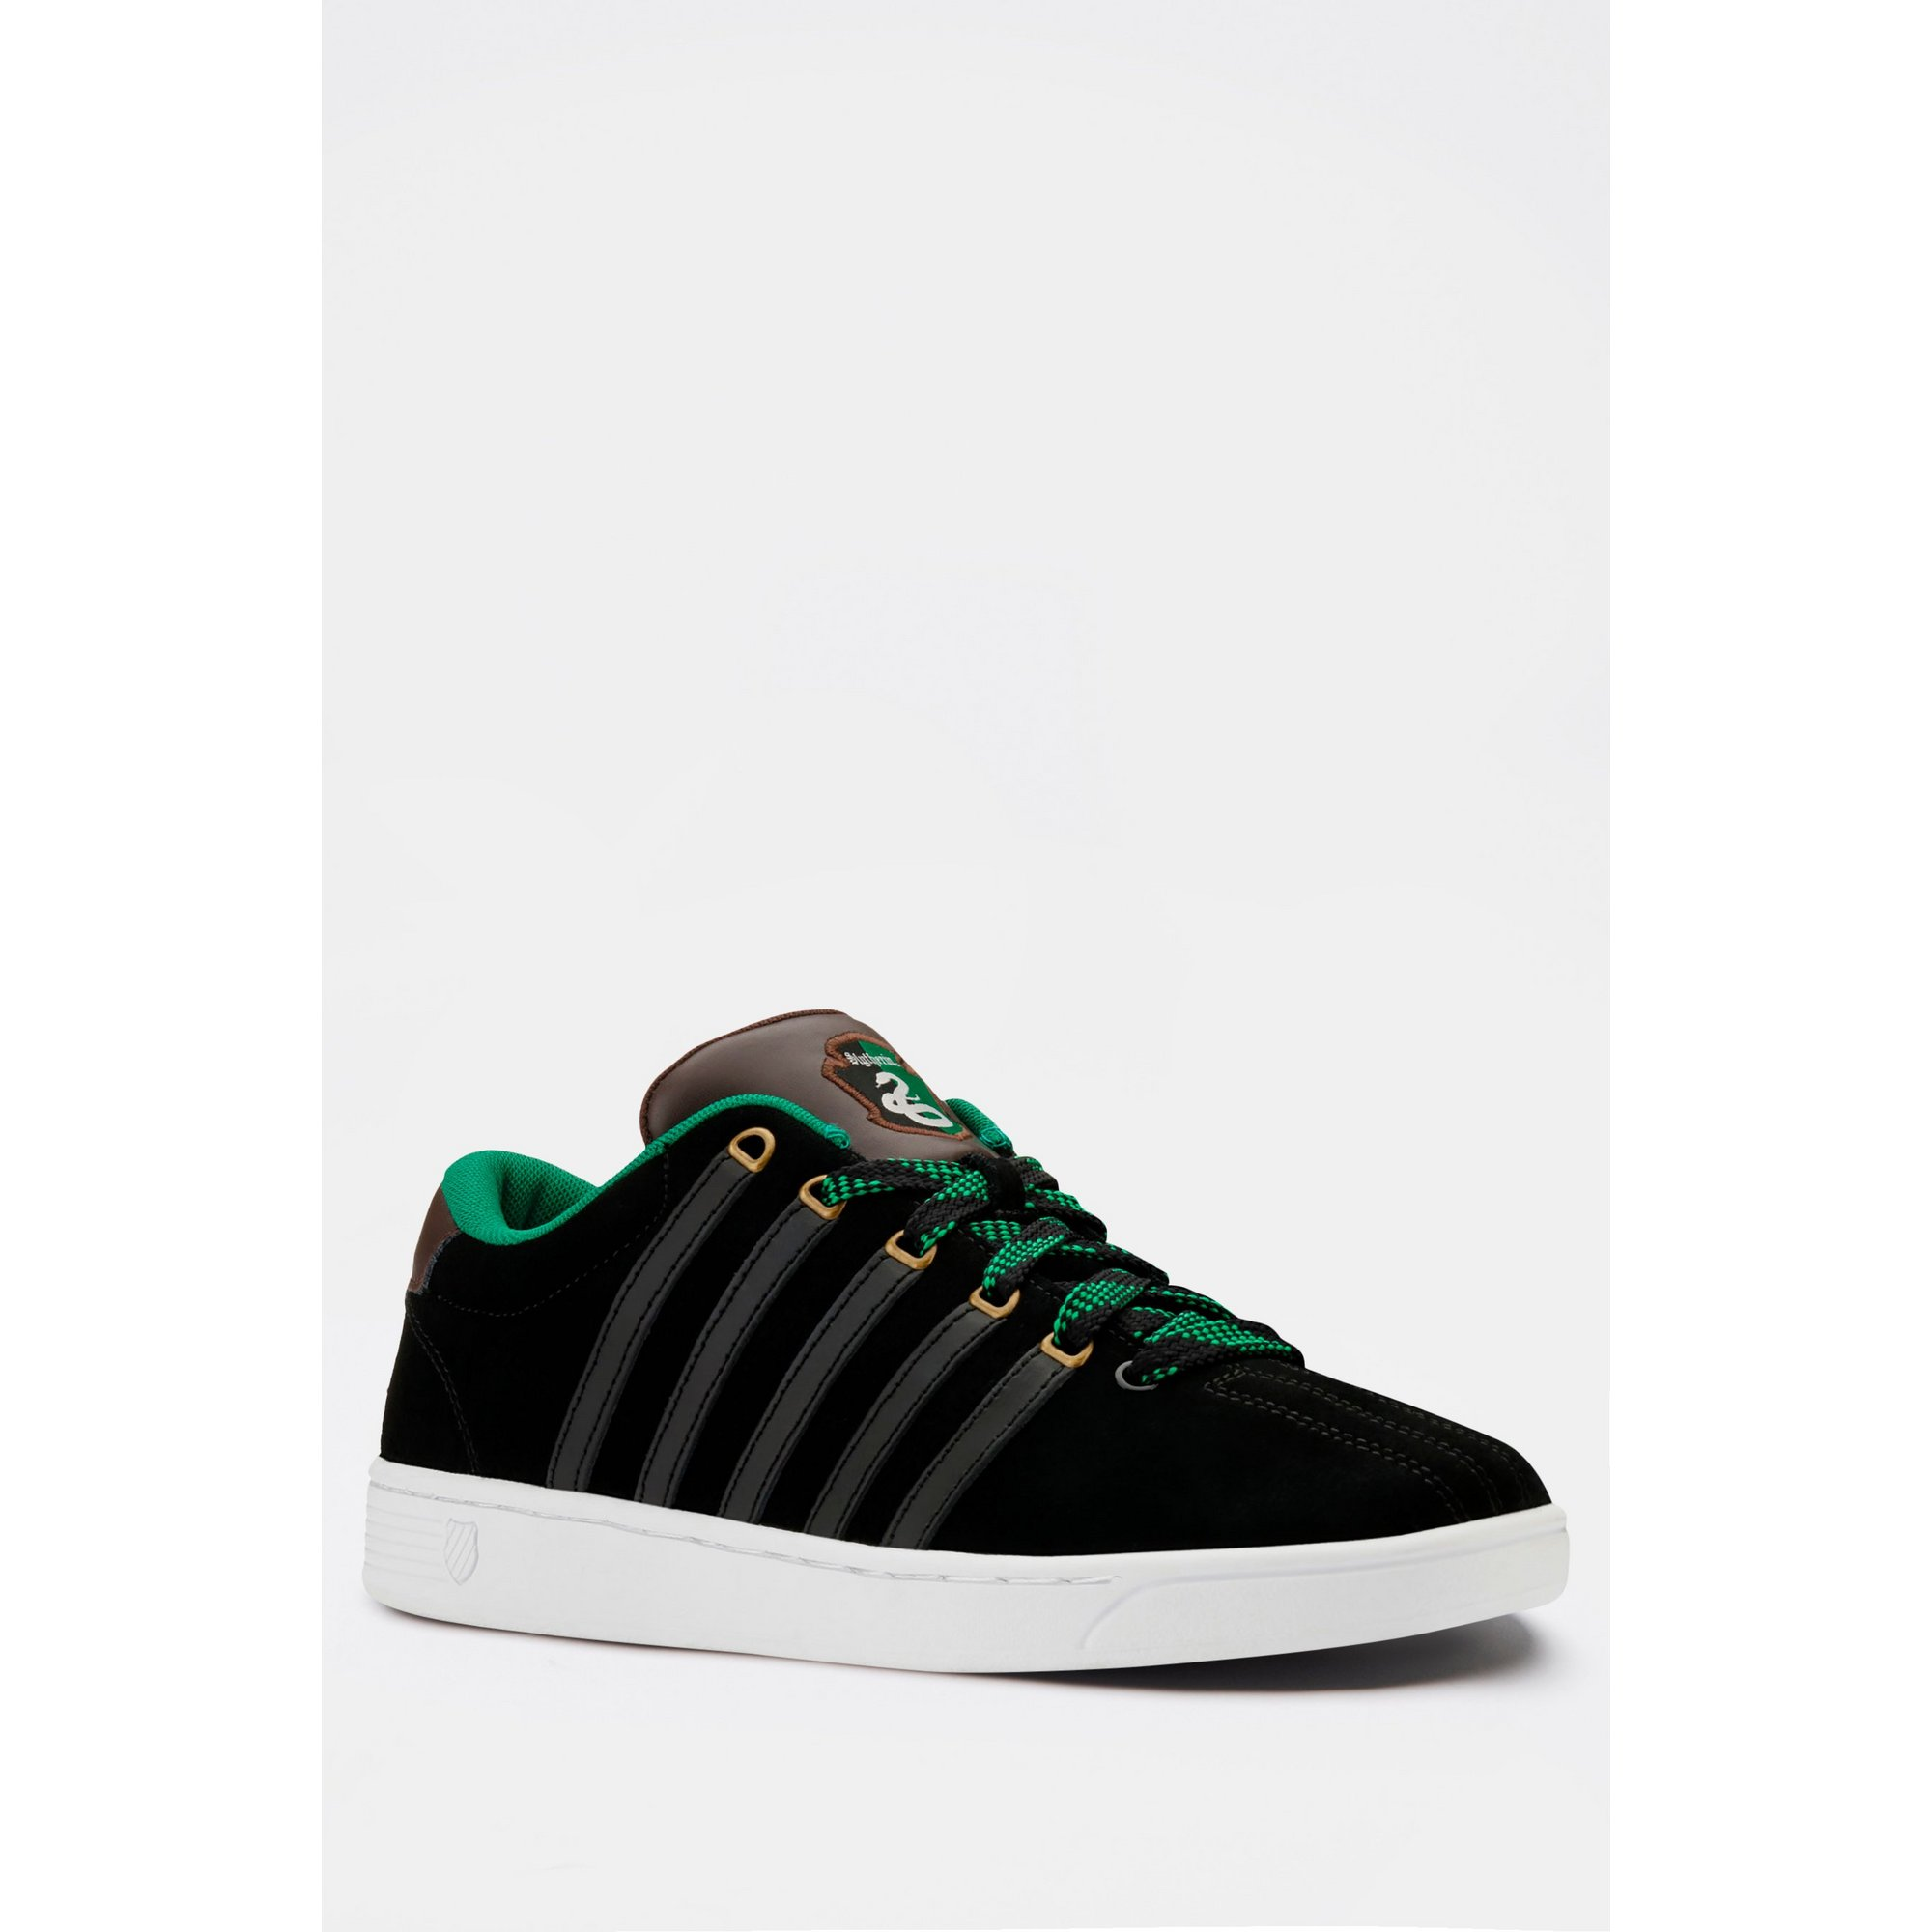 Image of K-Swiss Court Pro 2 Slytherin Trainers